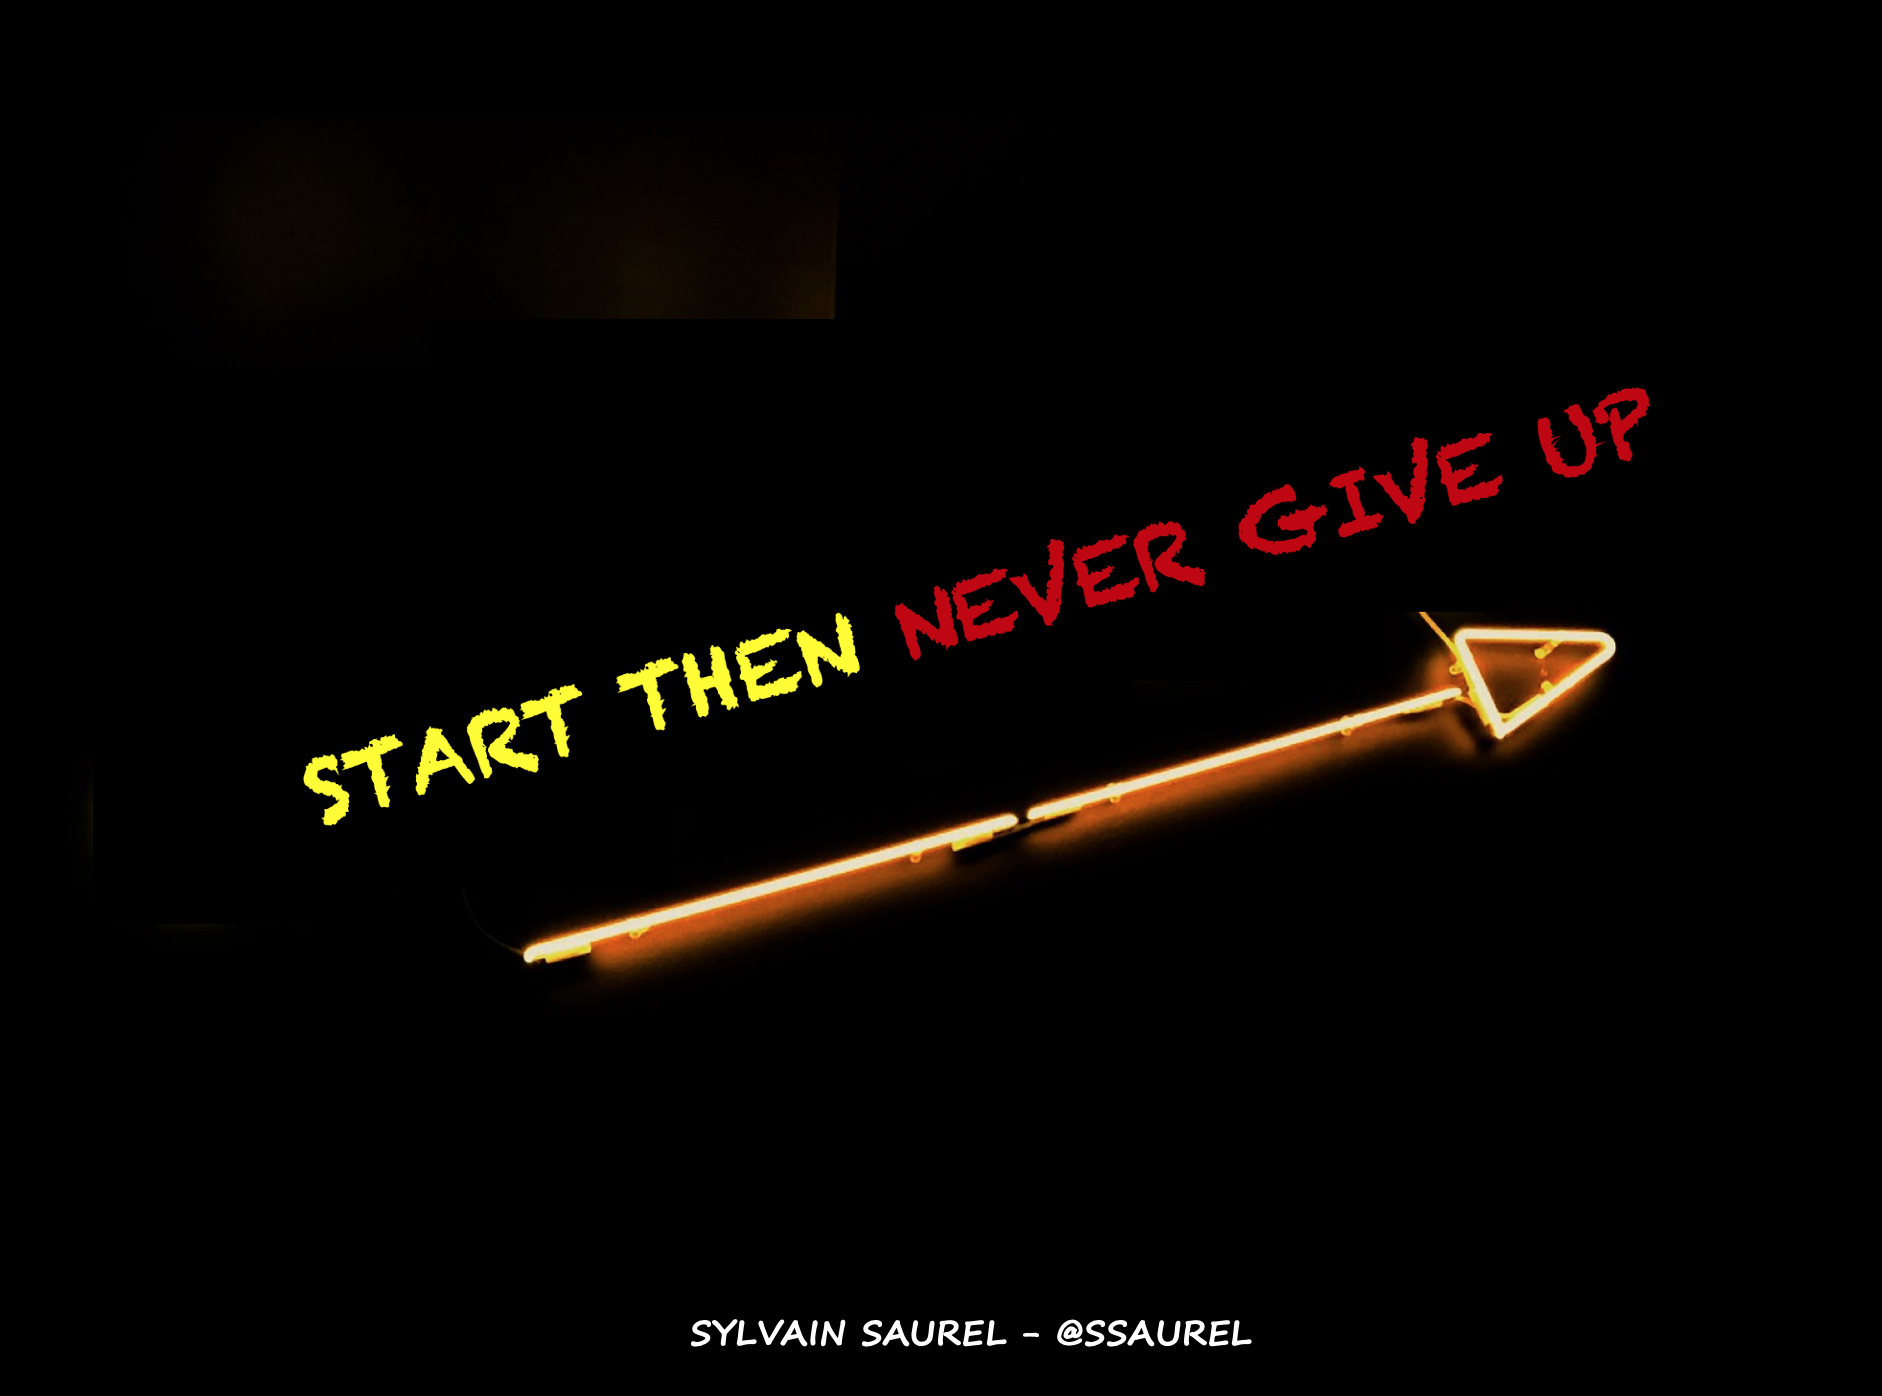 [Image] Start then never give up.